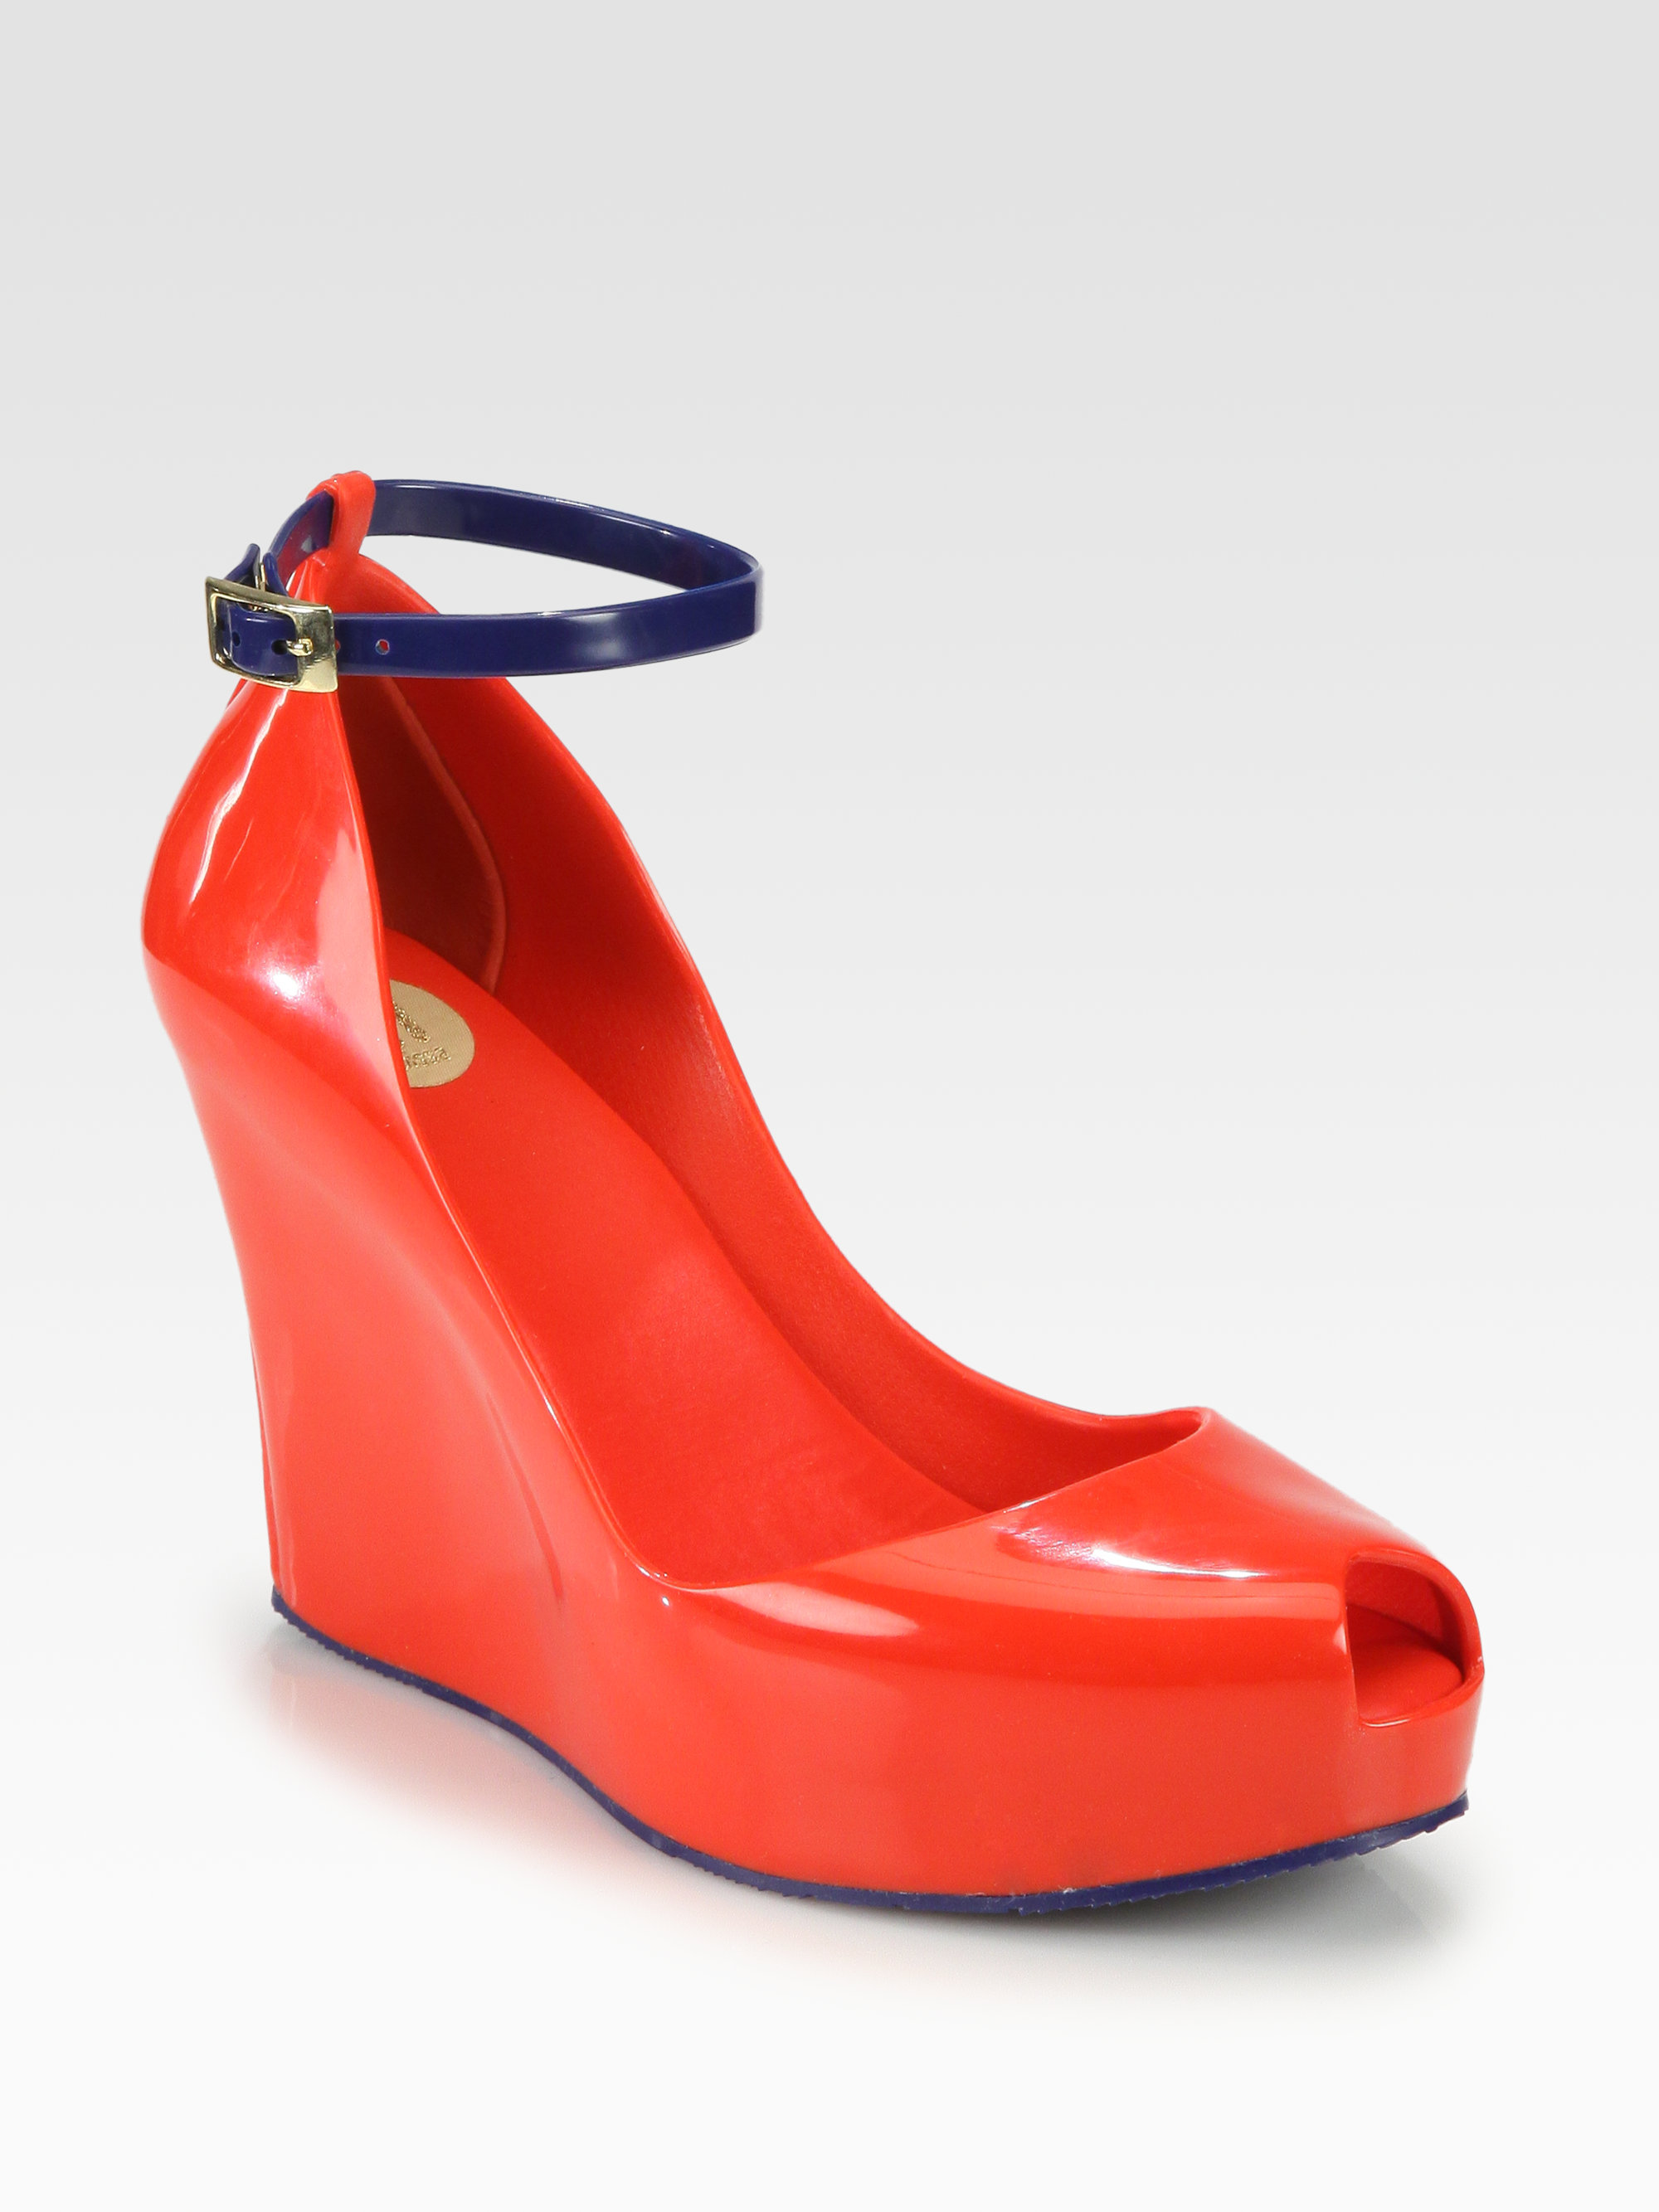 Melissa Patchuli Jelly Wedge Sandals in Red | Lyst